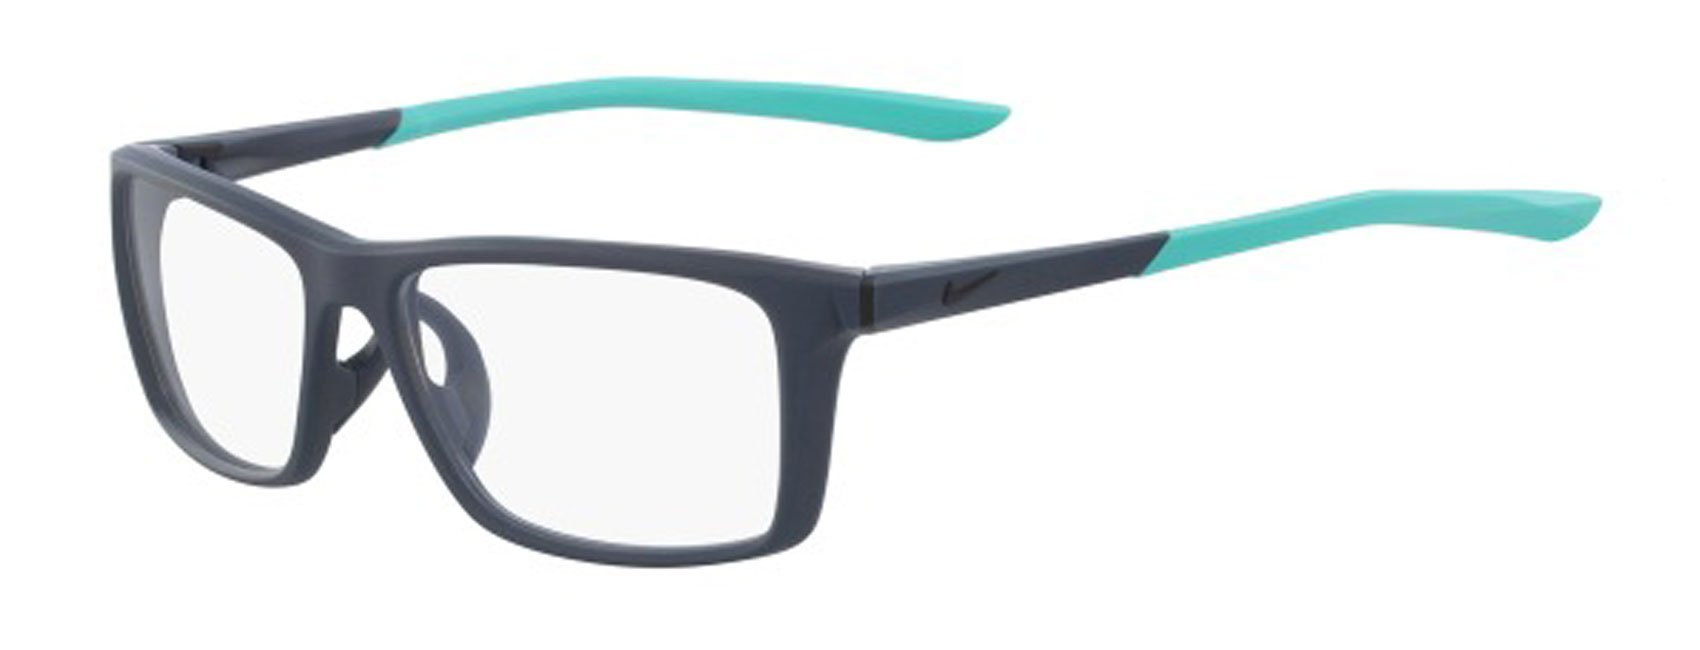 Nike 7084 Lead Glasses